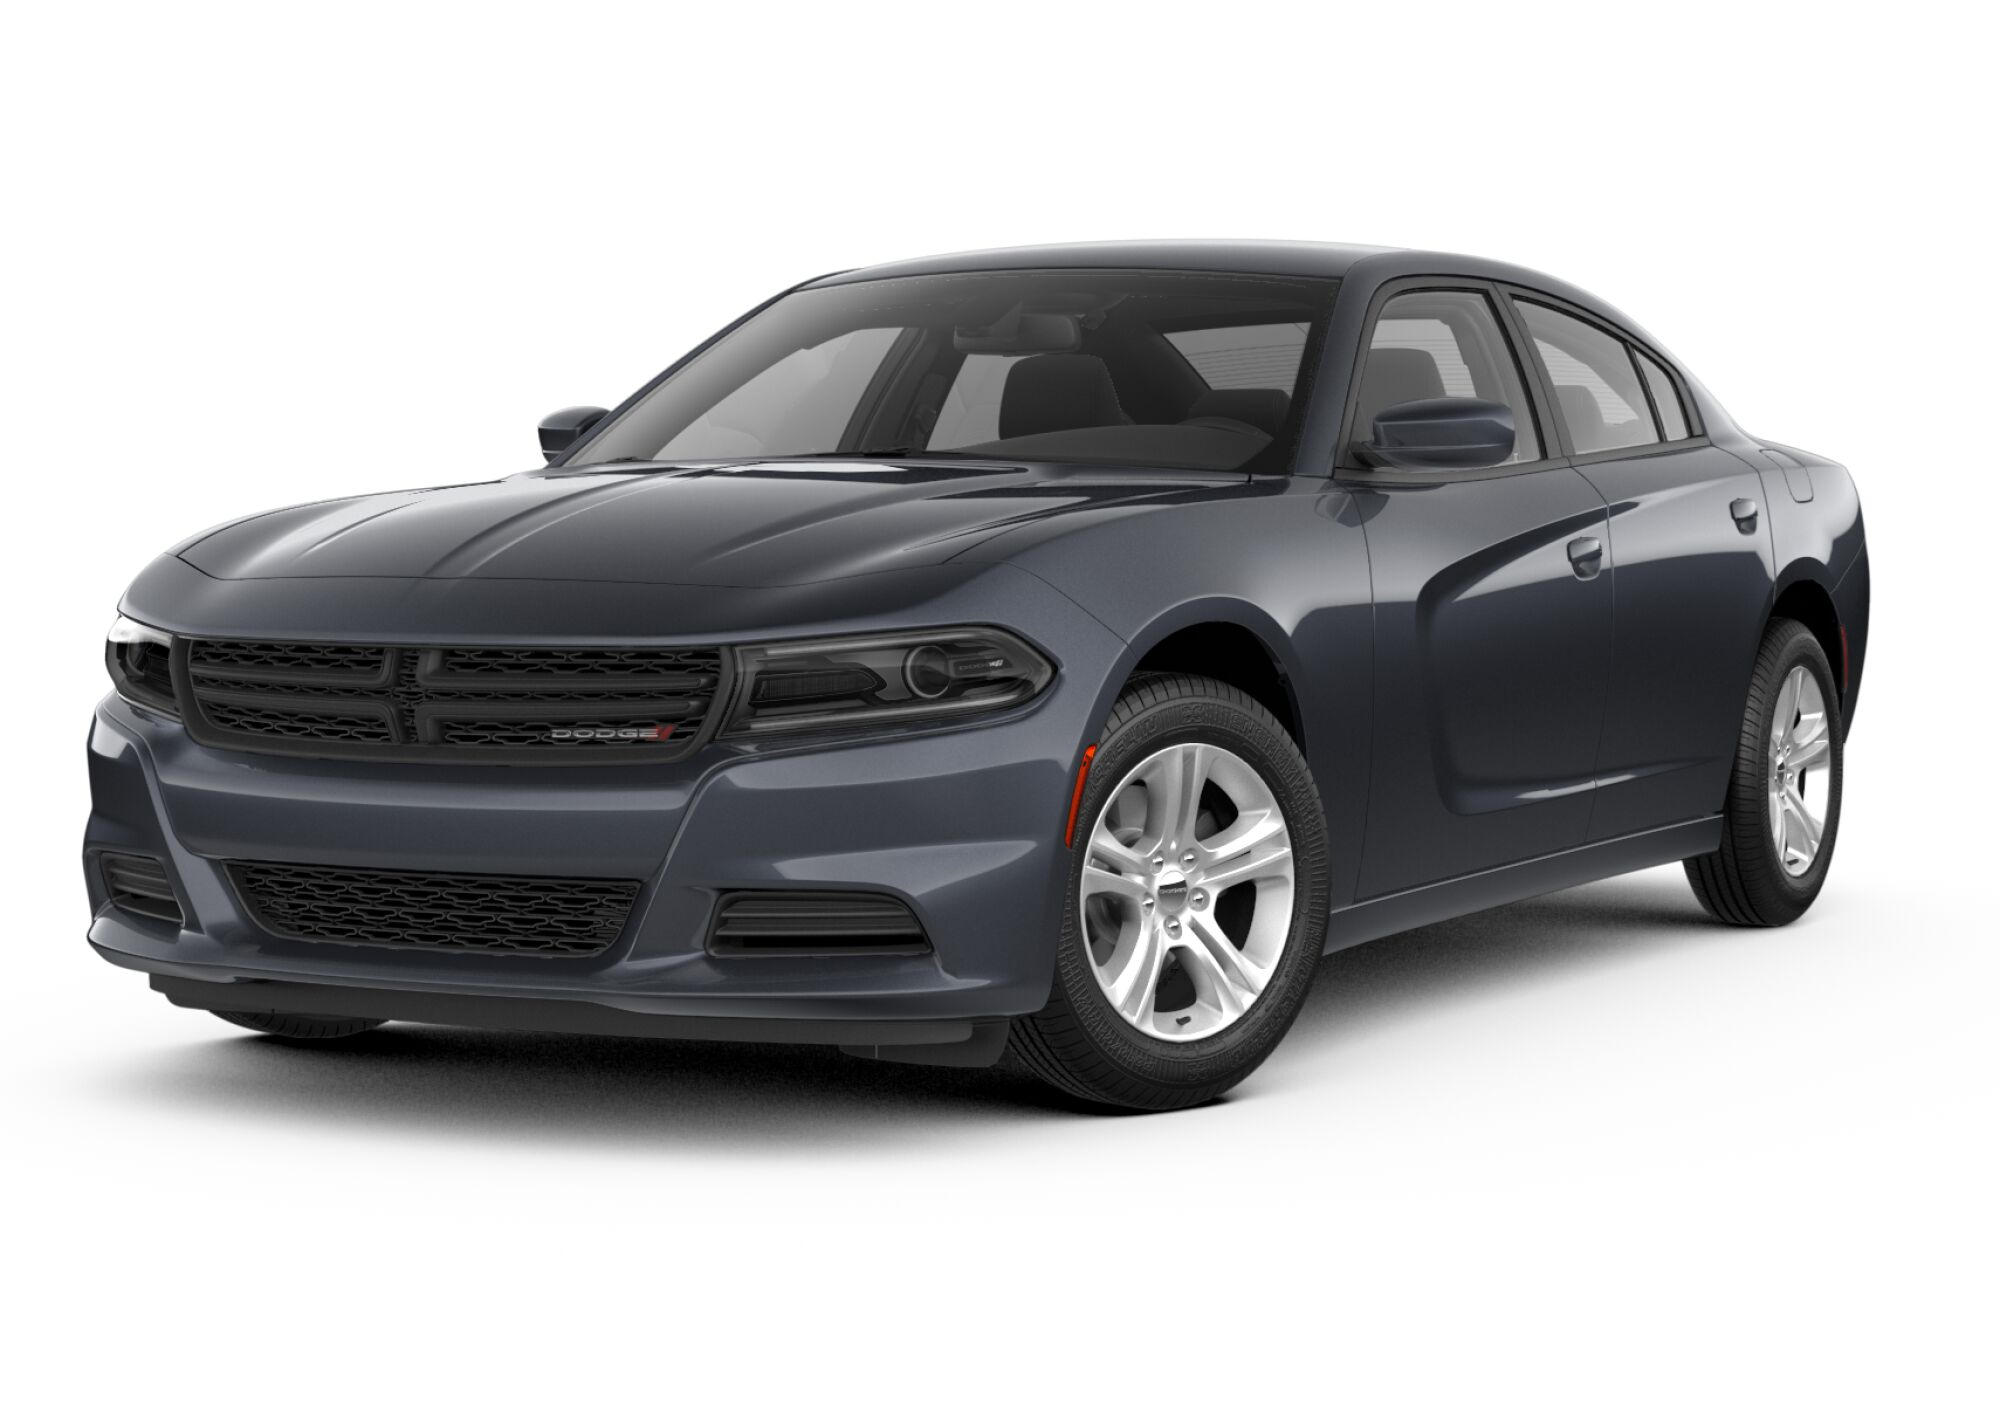 2019 Dodge Charger R T Full Specs Features And Price Carbuzz